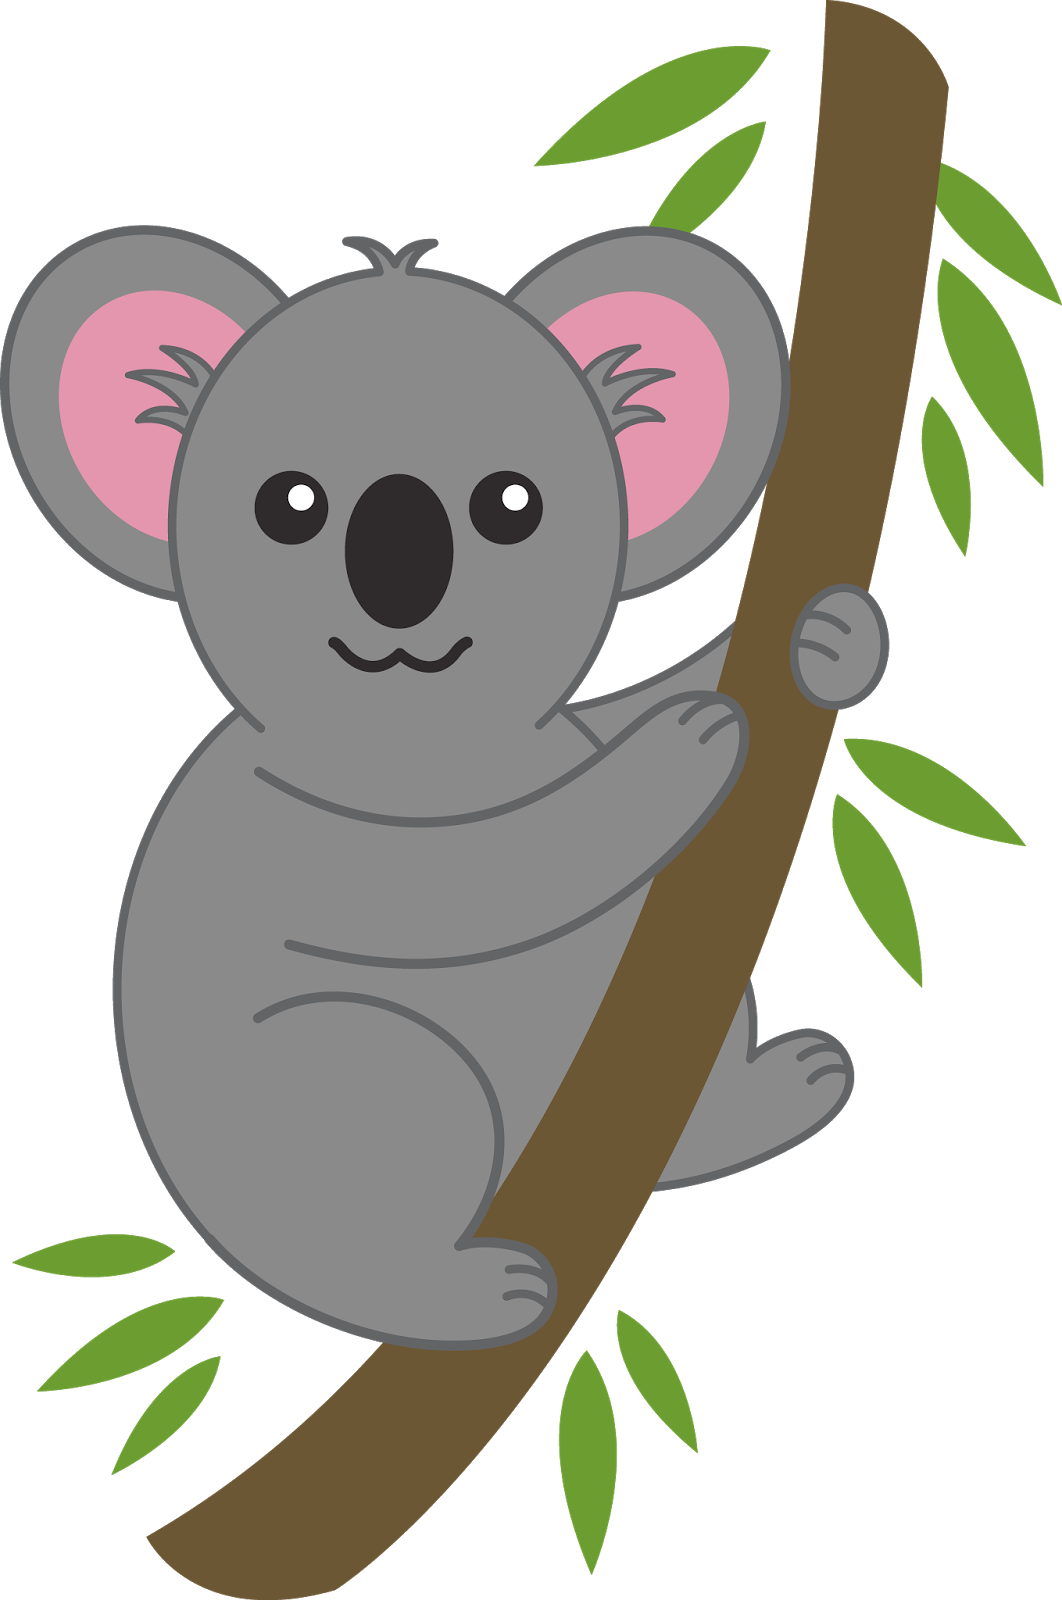 Koala lemon lion png. Forgetmenot koalas